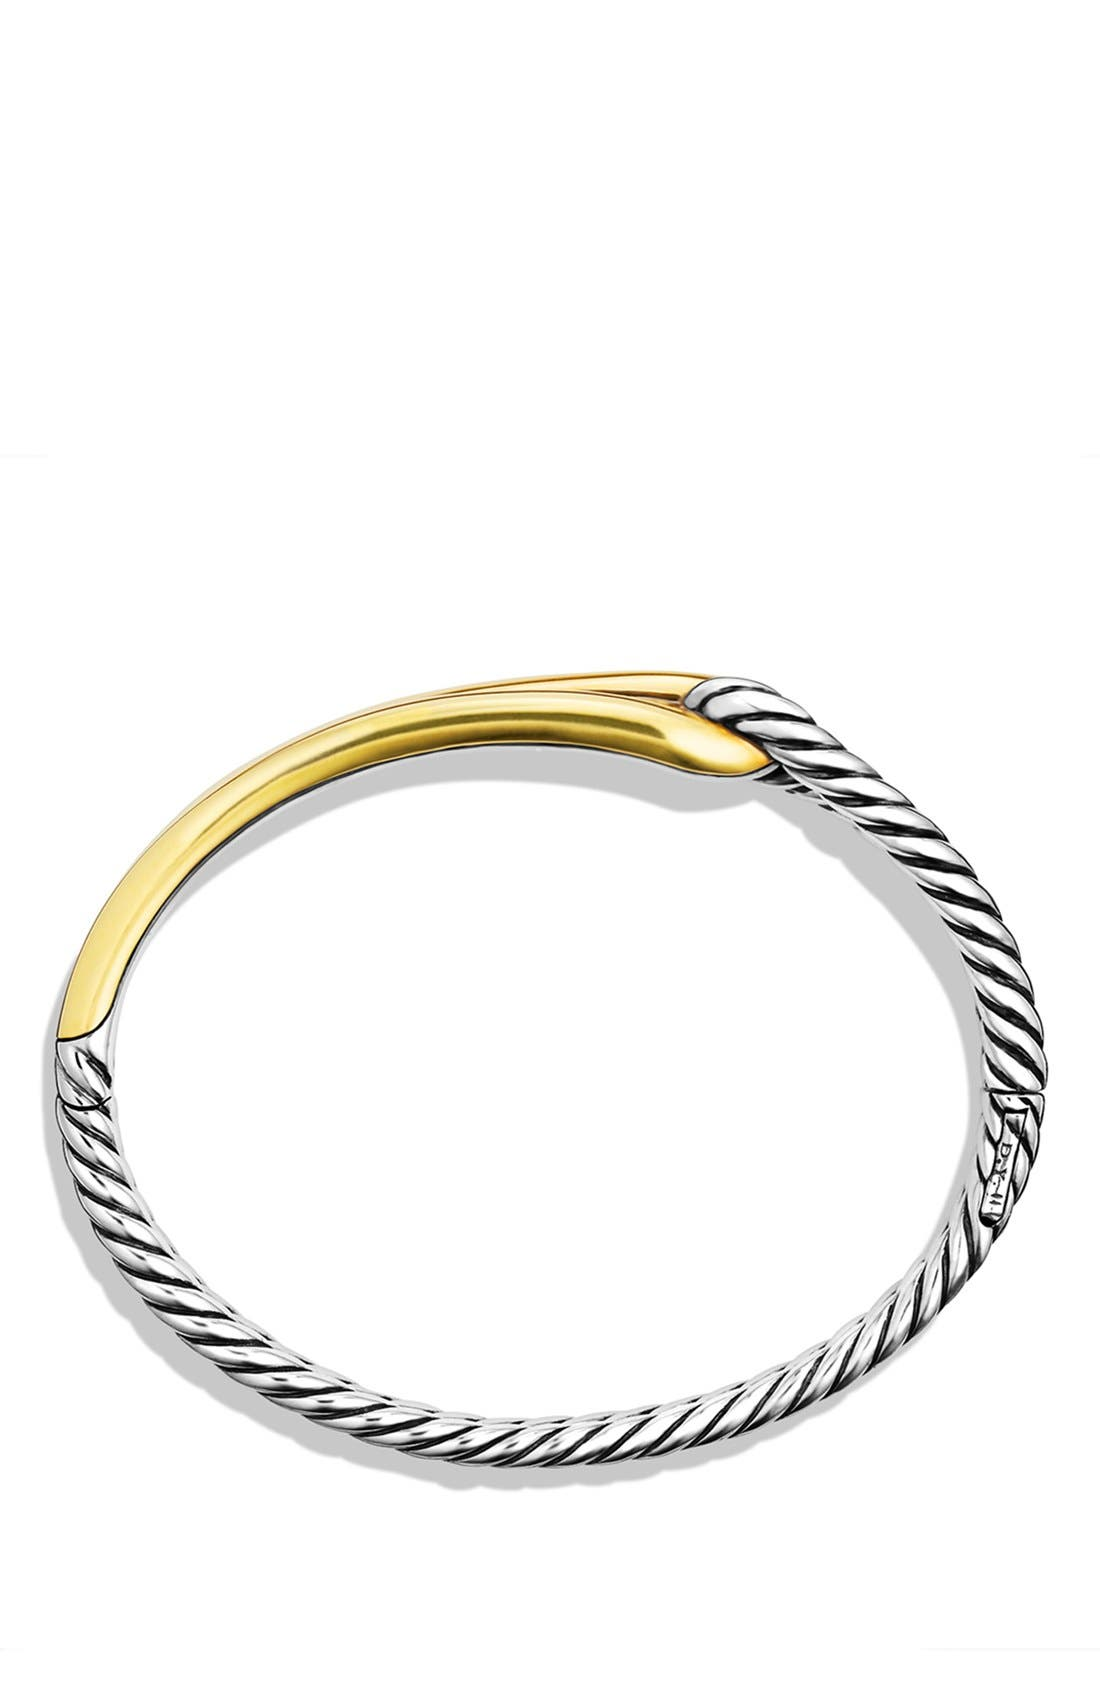 'Labyrinth' Single-Loop Bracelet with Gold,                             Alternate thumbnail 3, color,                             040